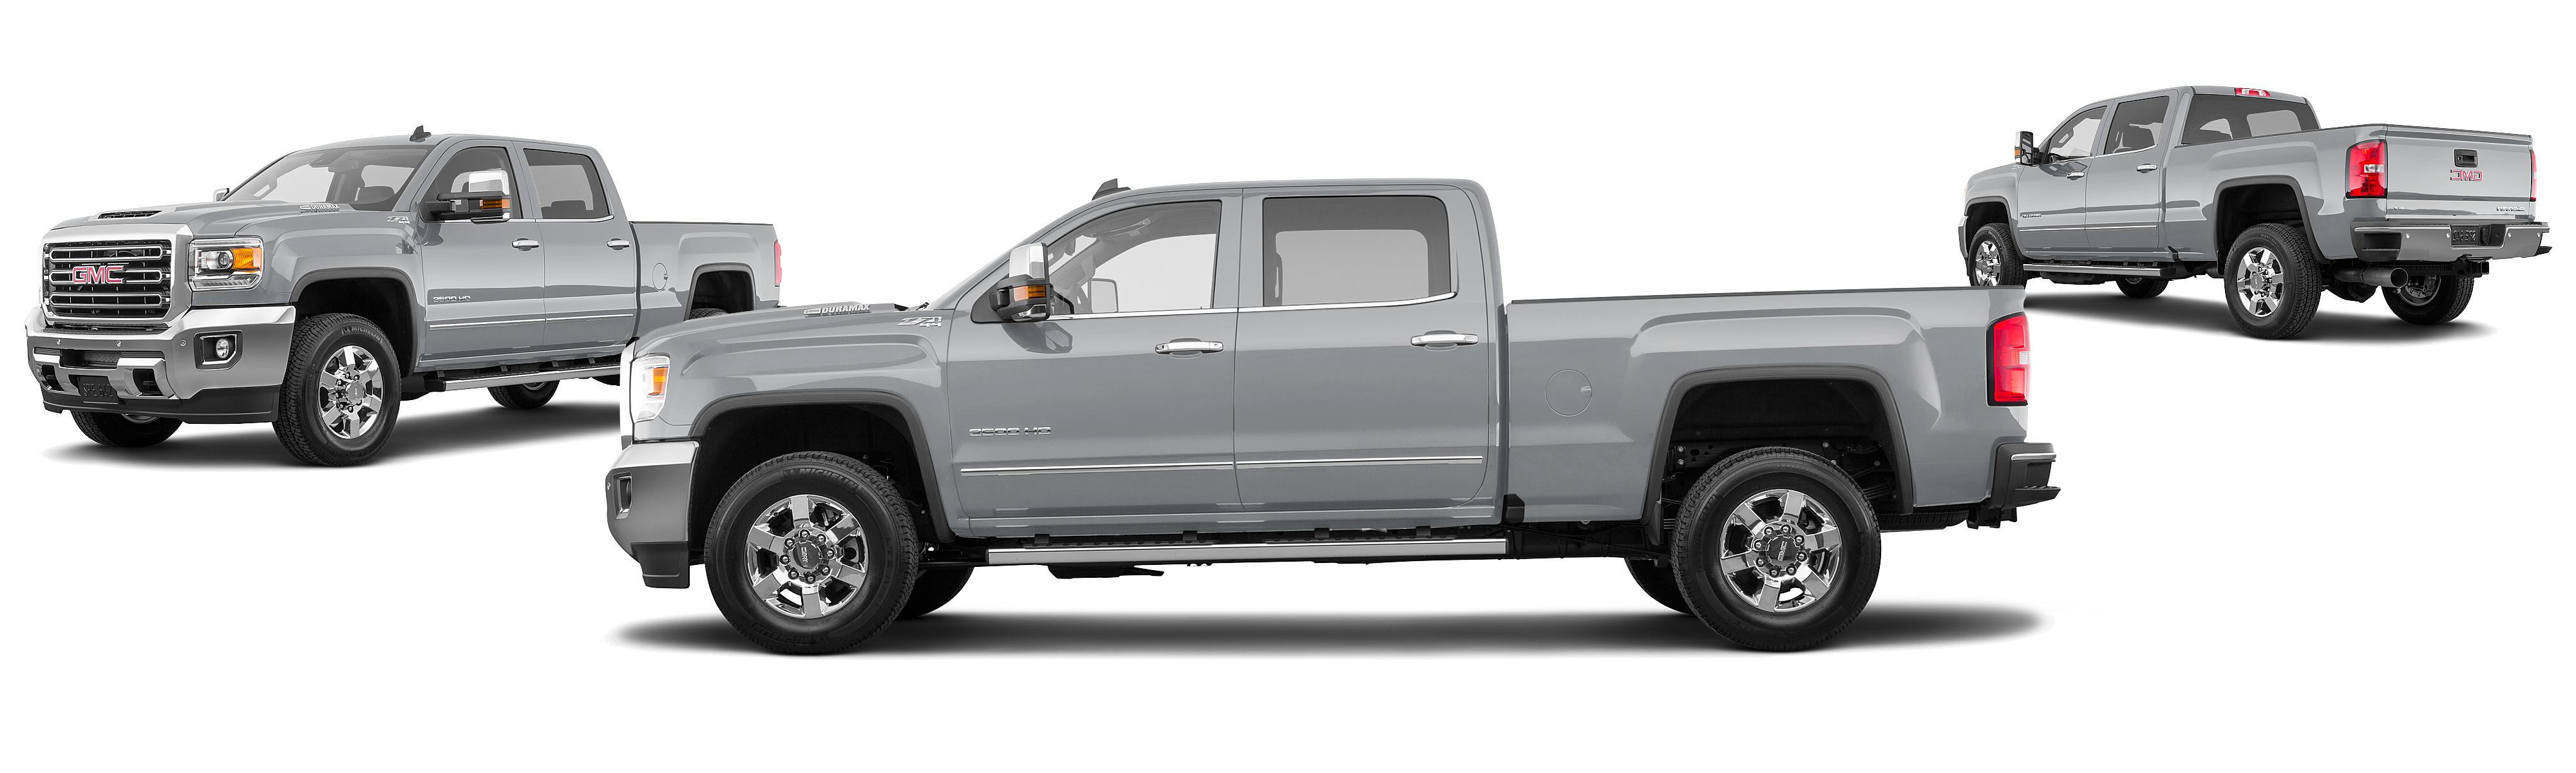 2017-gmc-sierra-3500hd-4x2-base-4dr-crew-cab-srw-quicksilver-metallic-composite-large Cool Review About 2011 Gmc 2500 Hd